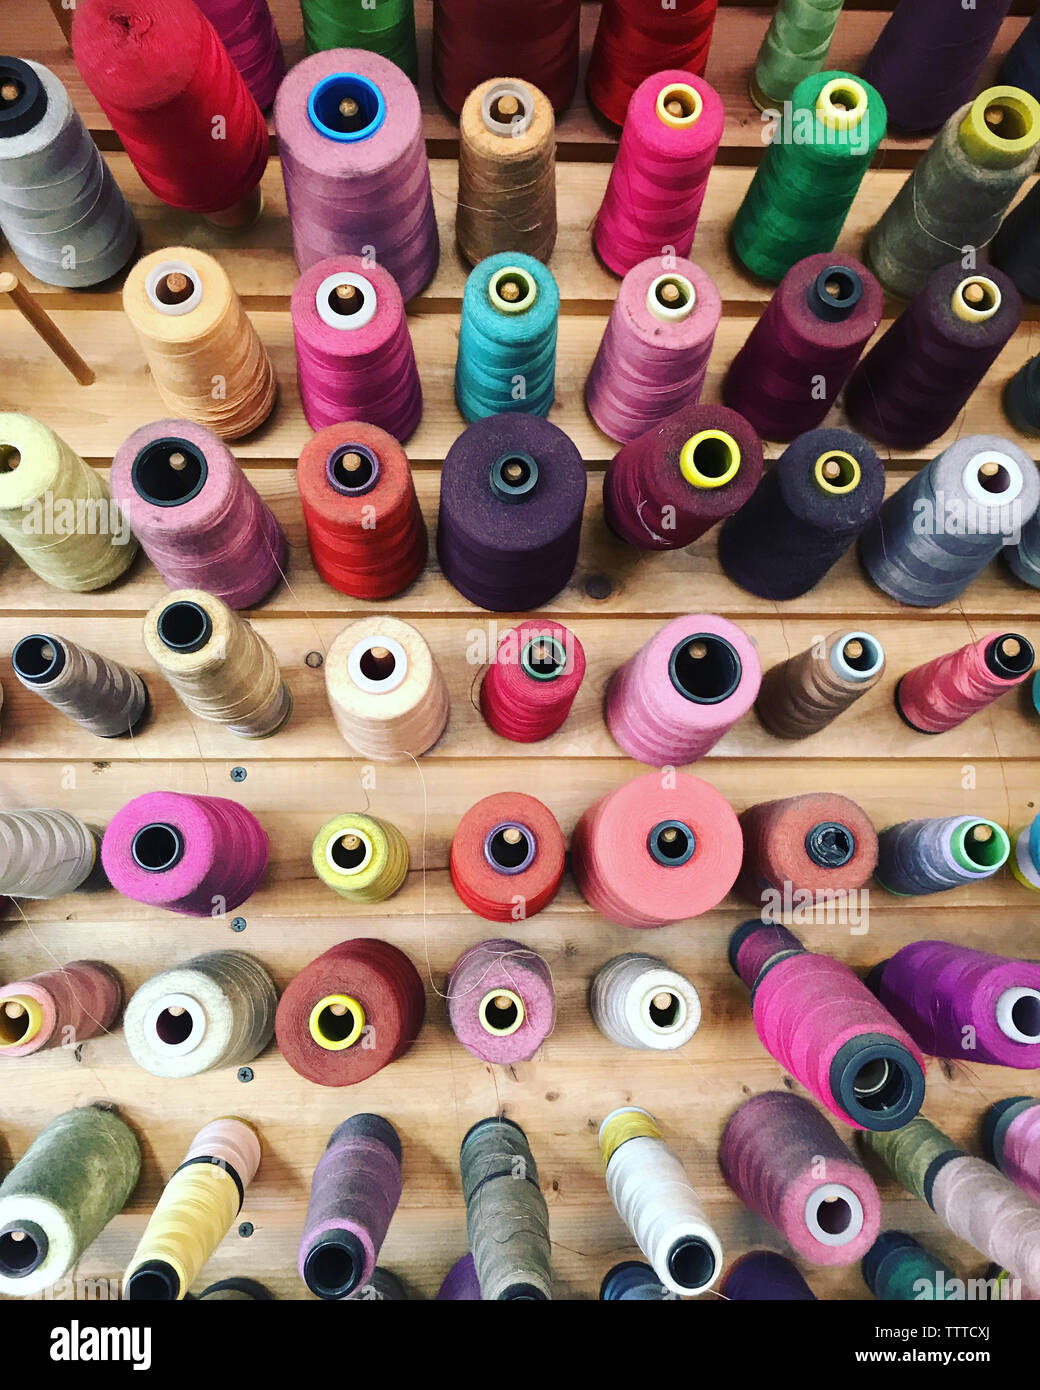 High angle view of colorful spools in wooden table - Stock Image